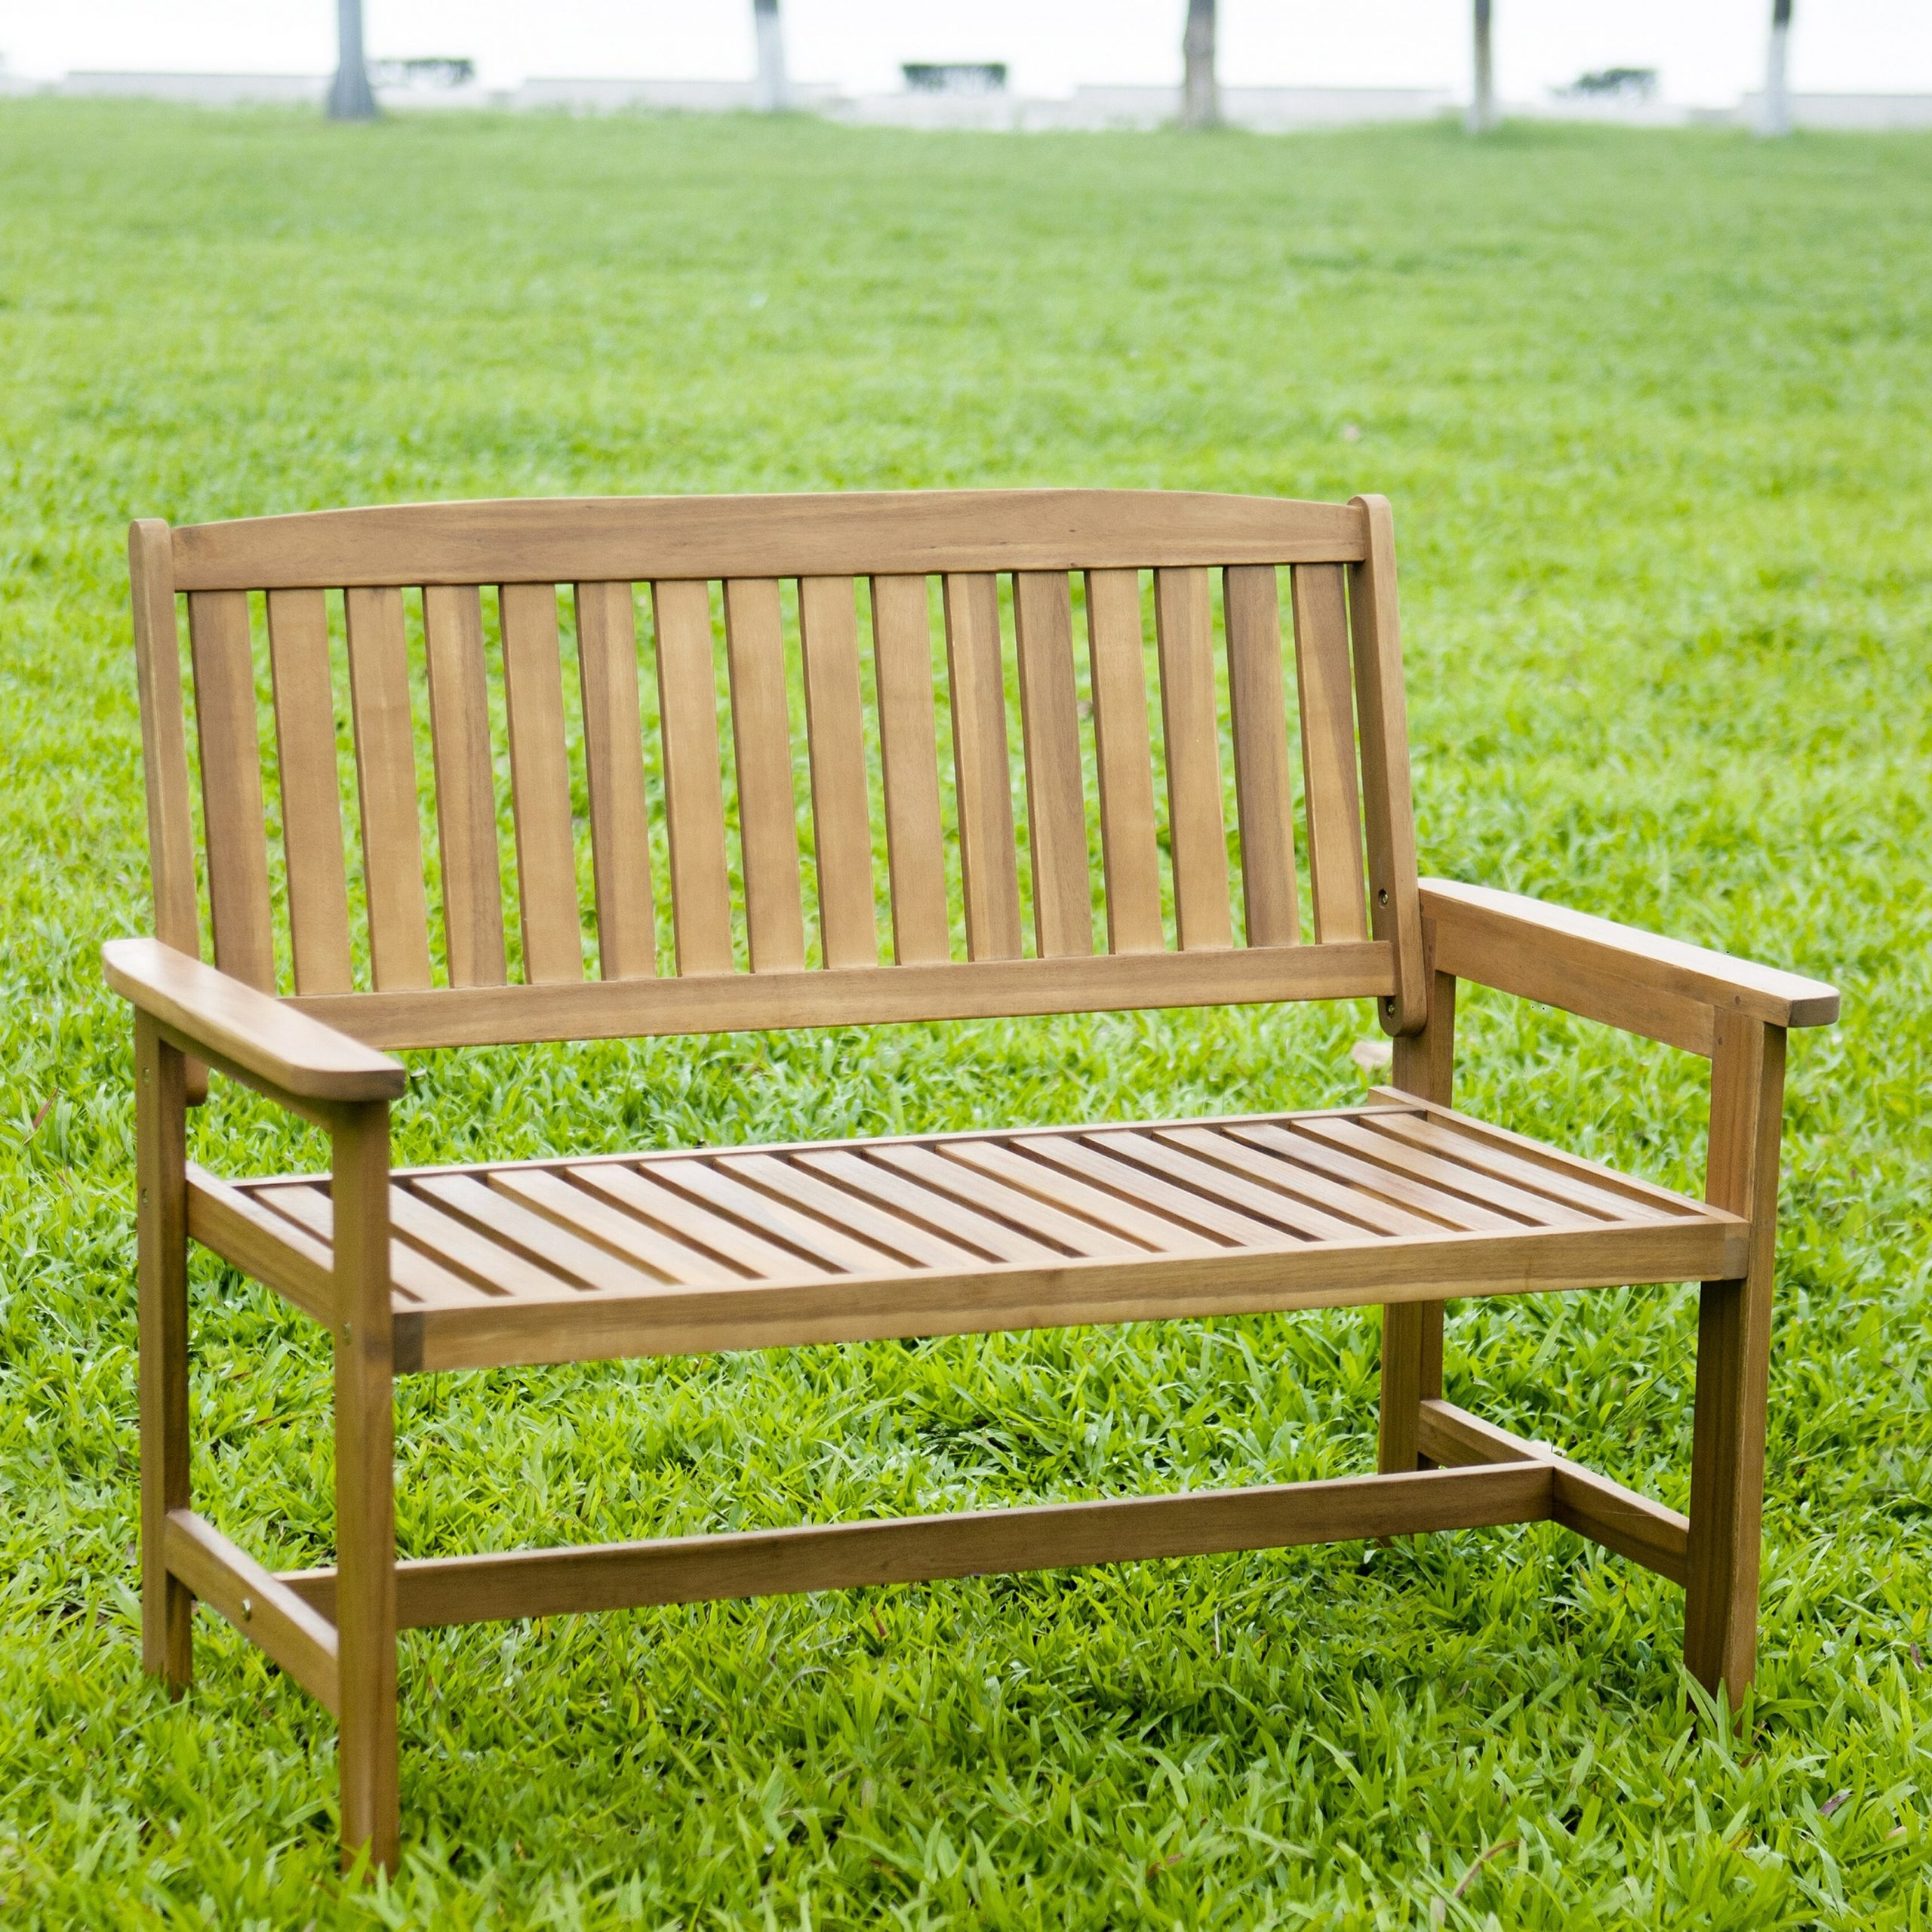 Best And Newest Avoca Wood Garden Benches Intended For Wood Garden Bench (View 7 of 30)